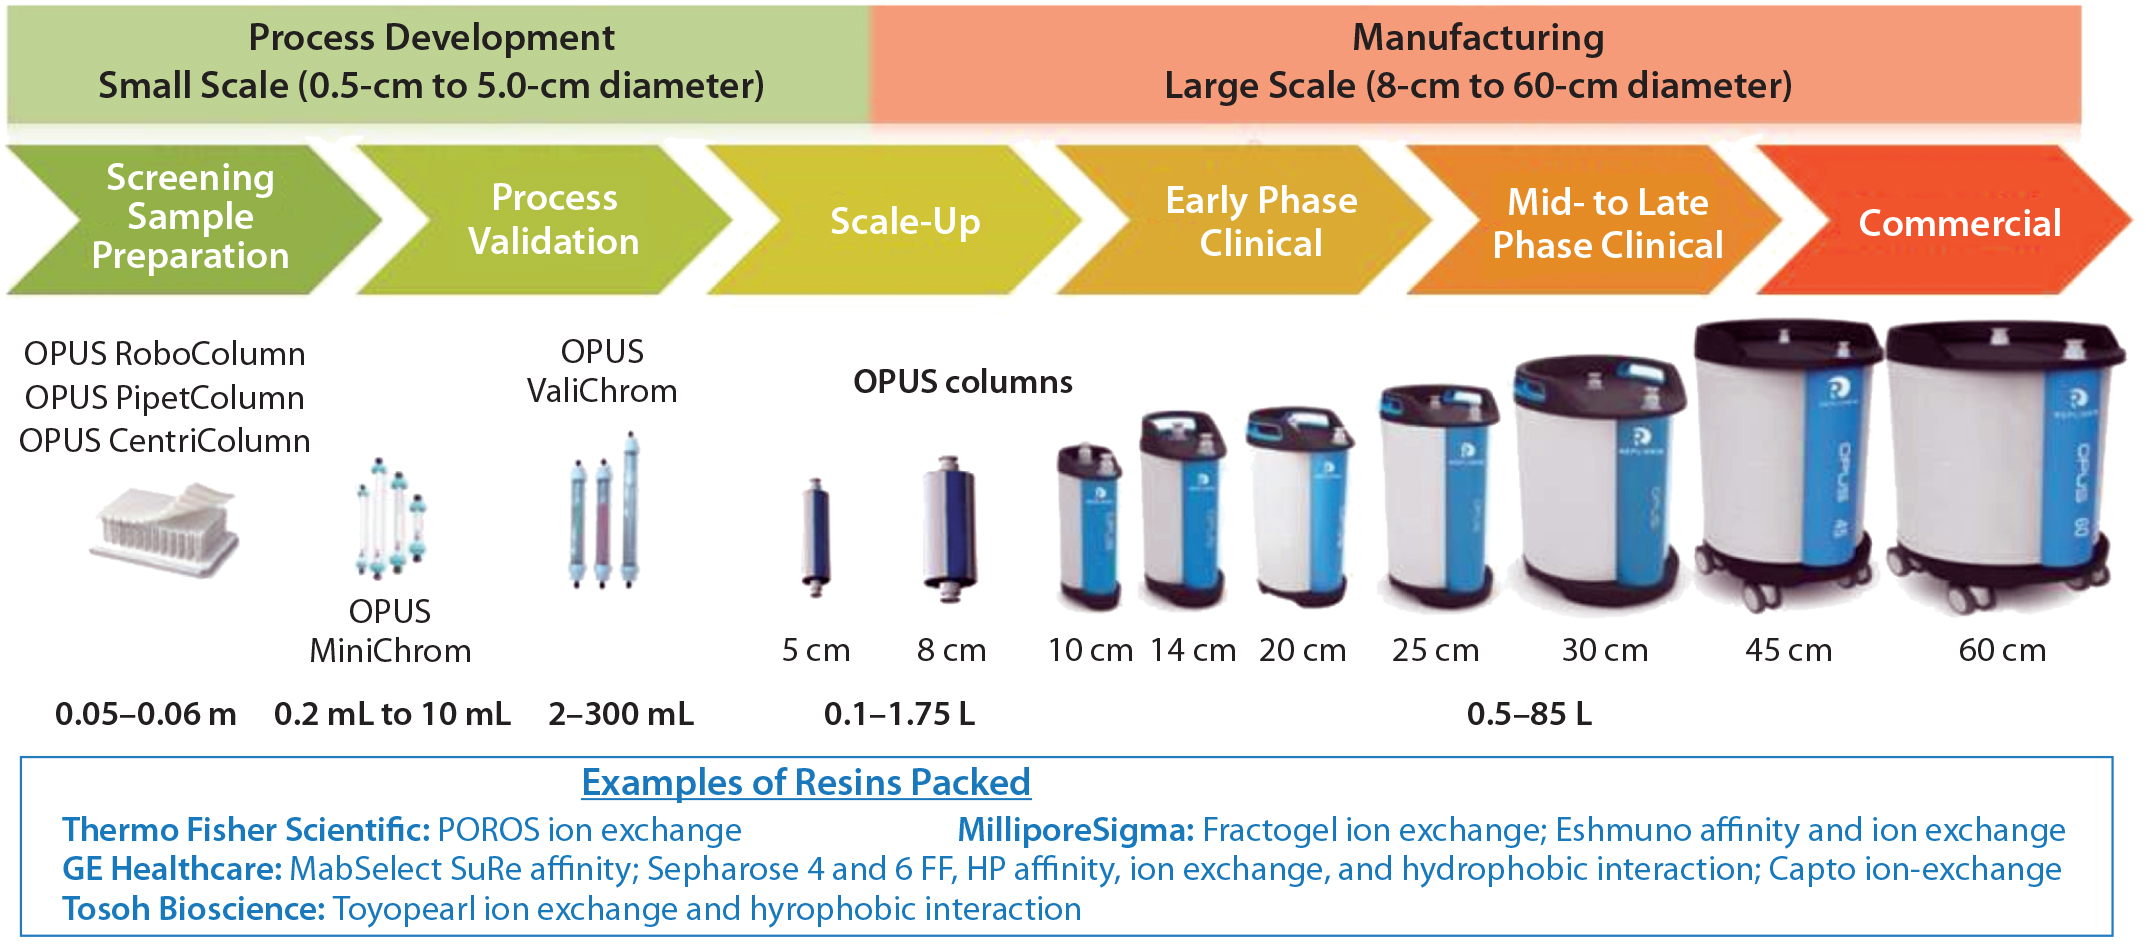 Process Development Phase : Reducing clinical phase manufacturing costs collaborating